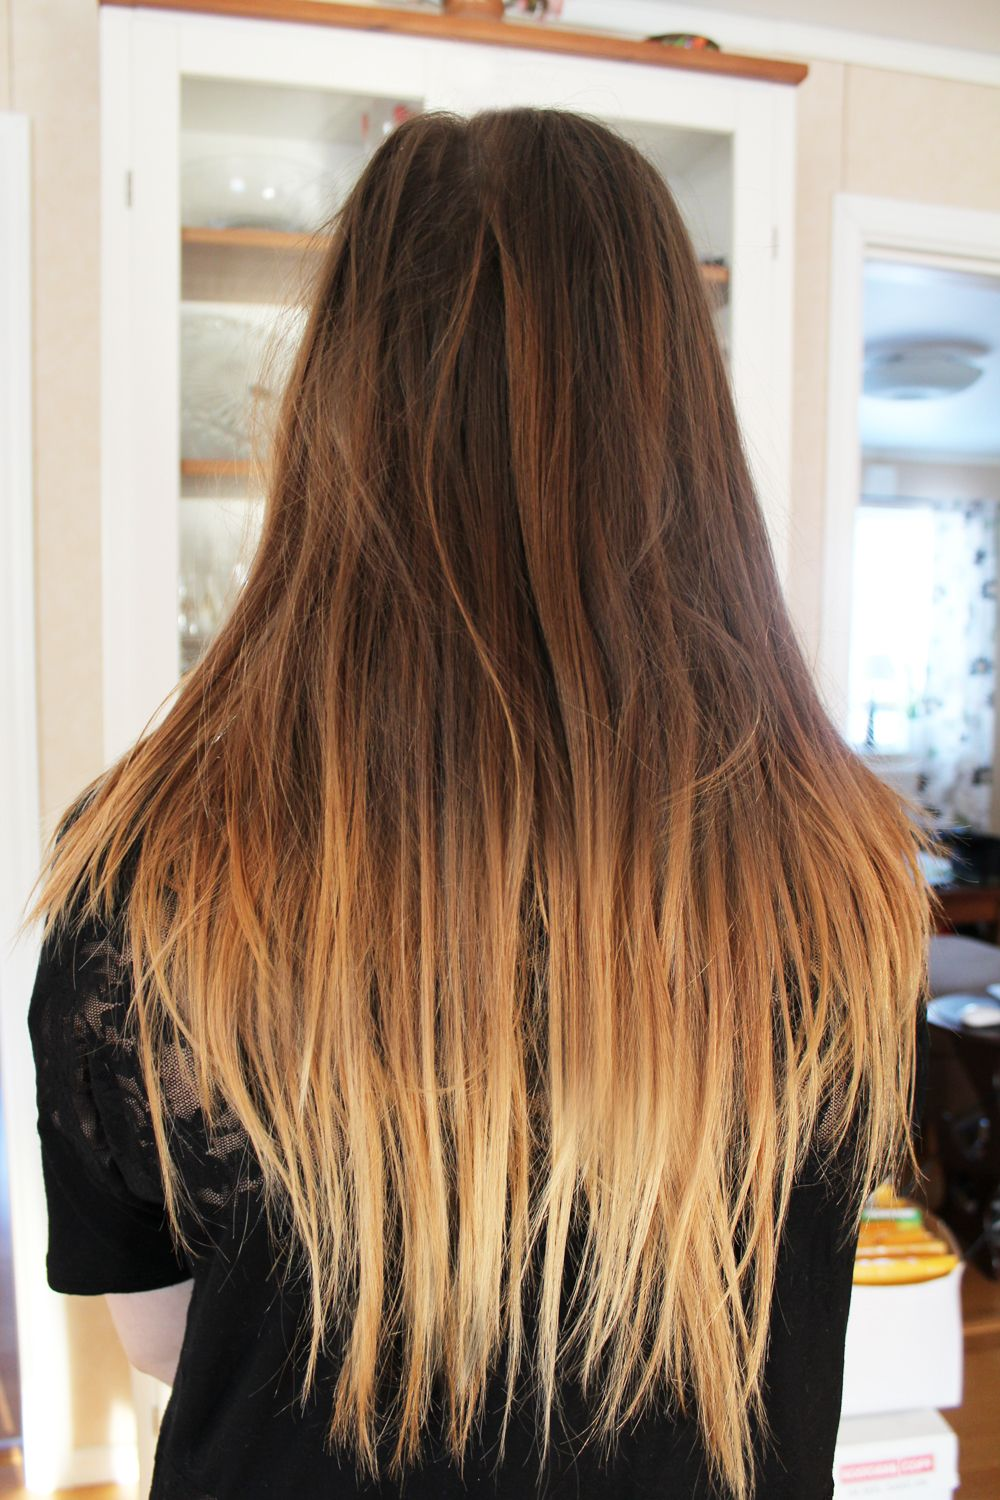 Ombré hair ombre hair pinterest ombre ombre hair and hair style